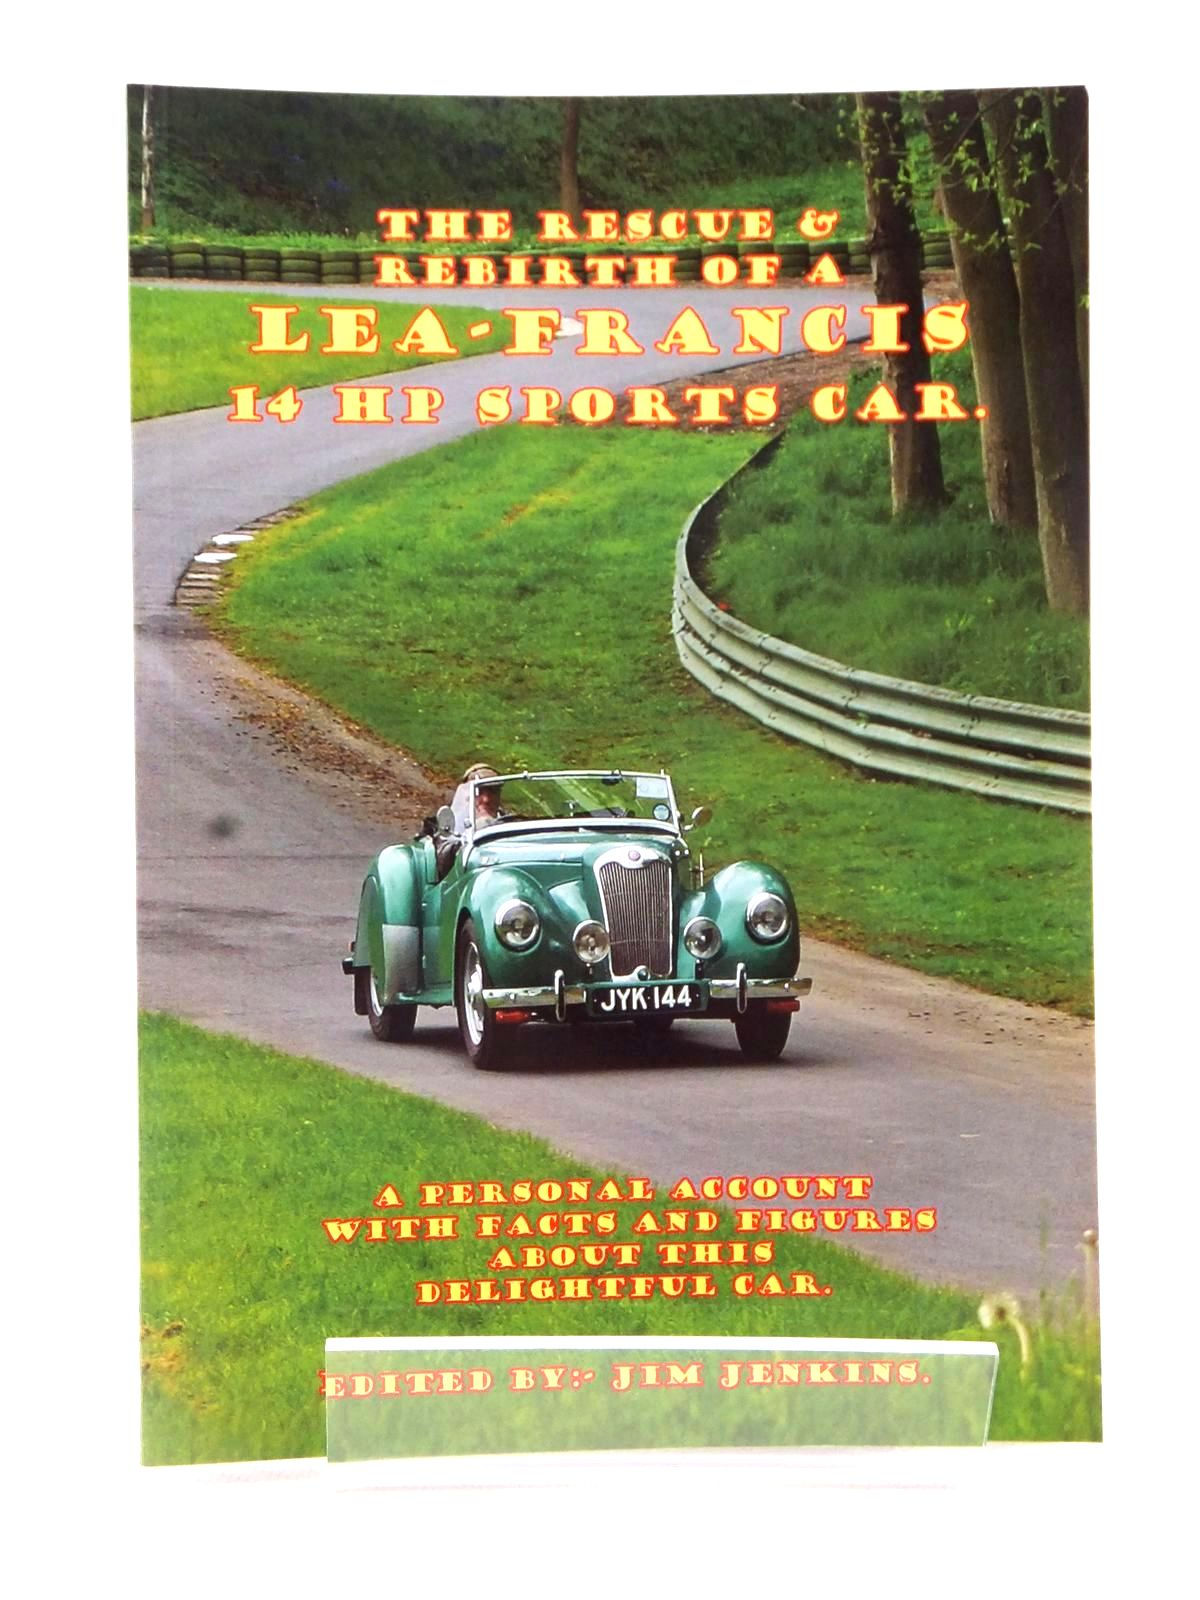 Photo of THE RESCUE & REBIRTH OF A LEA-FRANCIS 14 HP SPORTS CAR written by Jenkins, Jim published by Jim Jenkins (STOCK CODE: 1608936)  for sale by Stella & Rose's Books